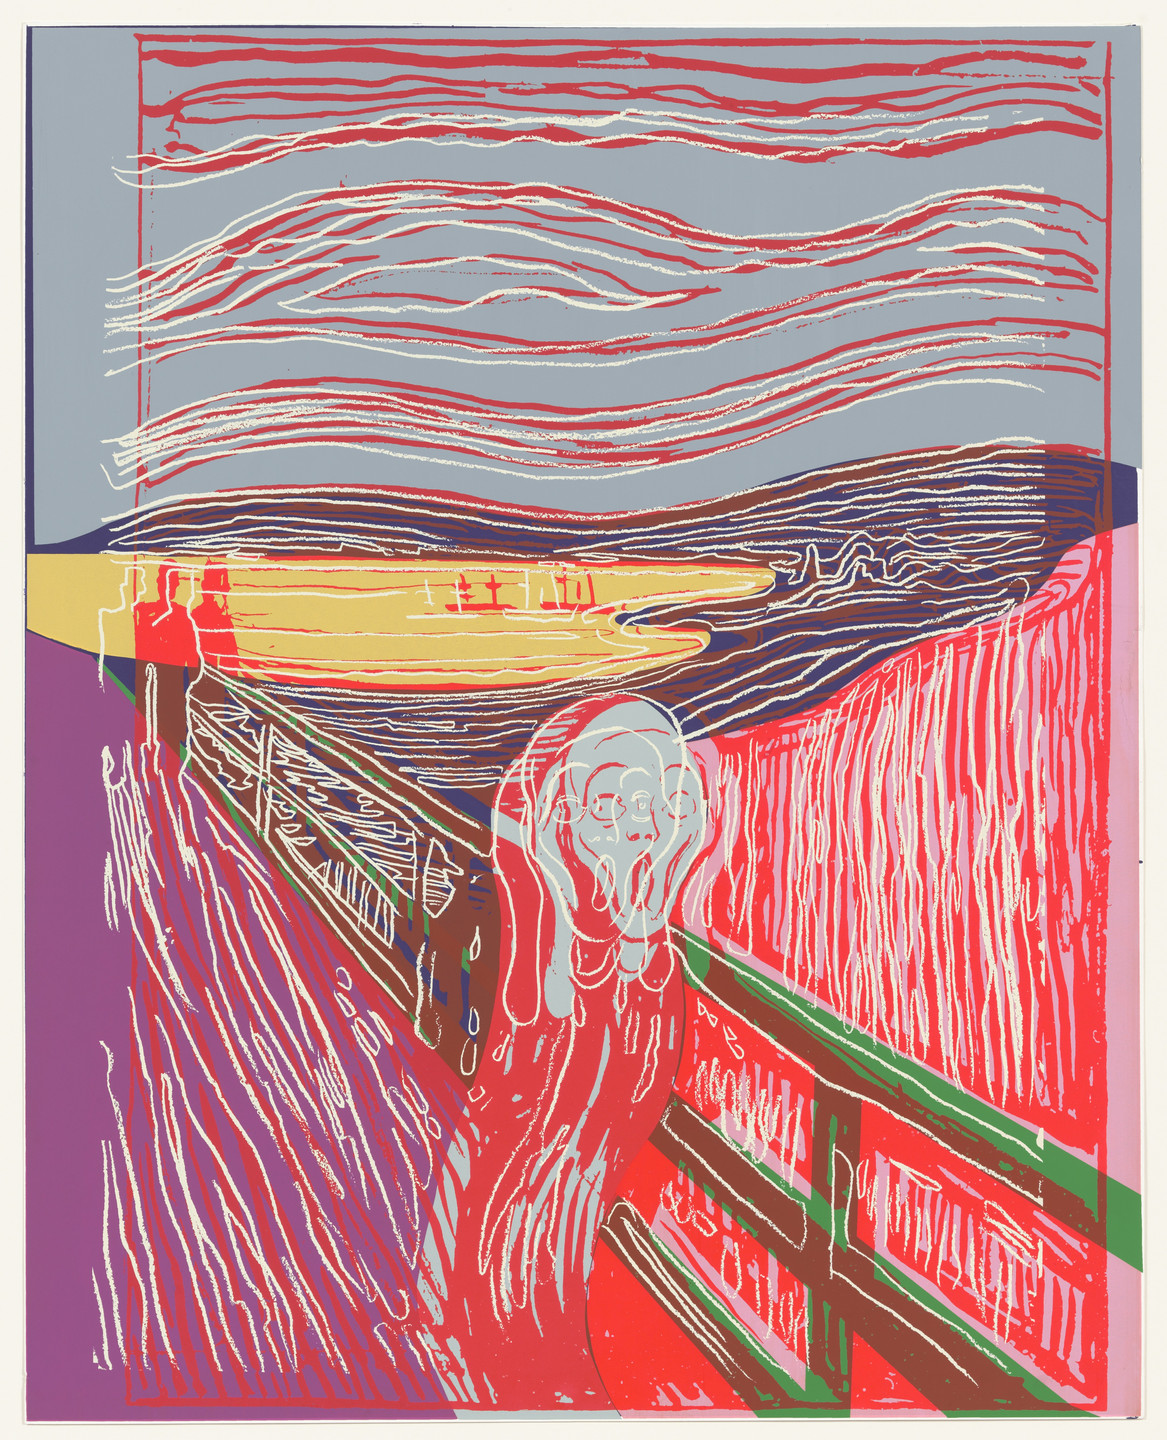 Andy Warhol. The Scream (after Munch). 1984